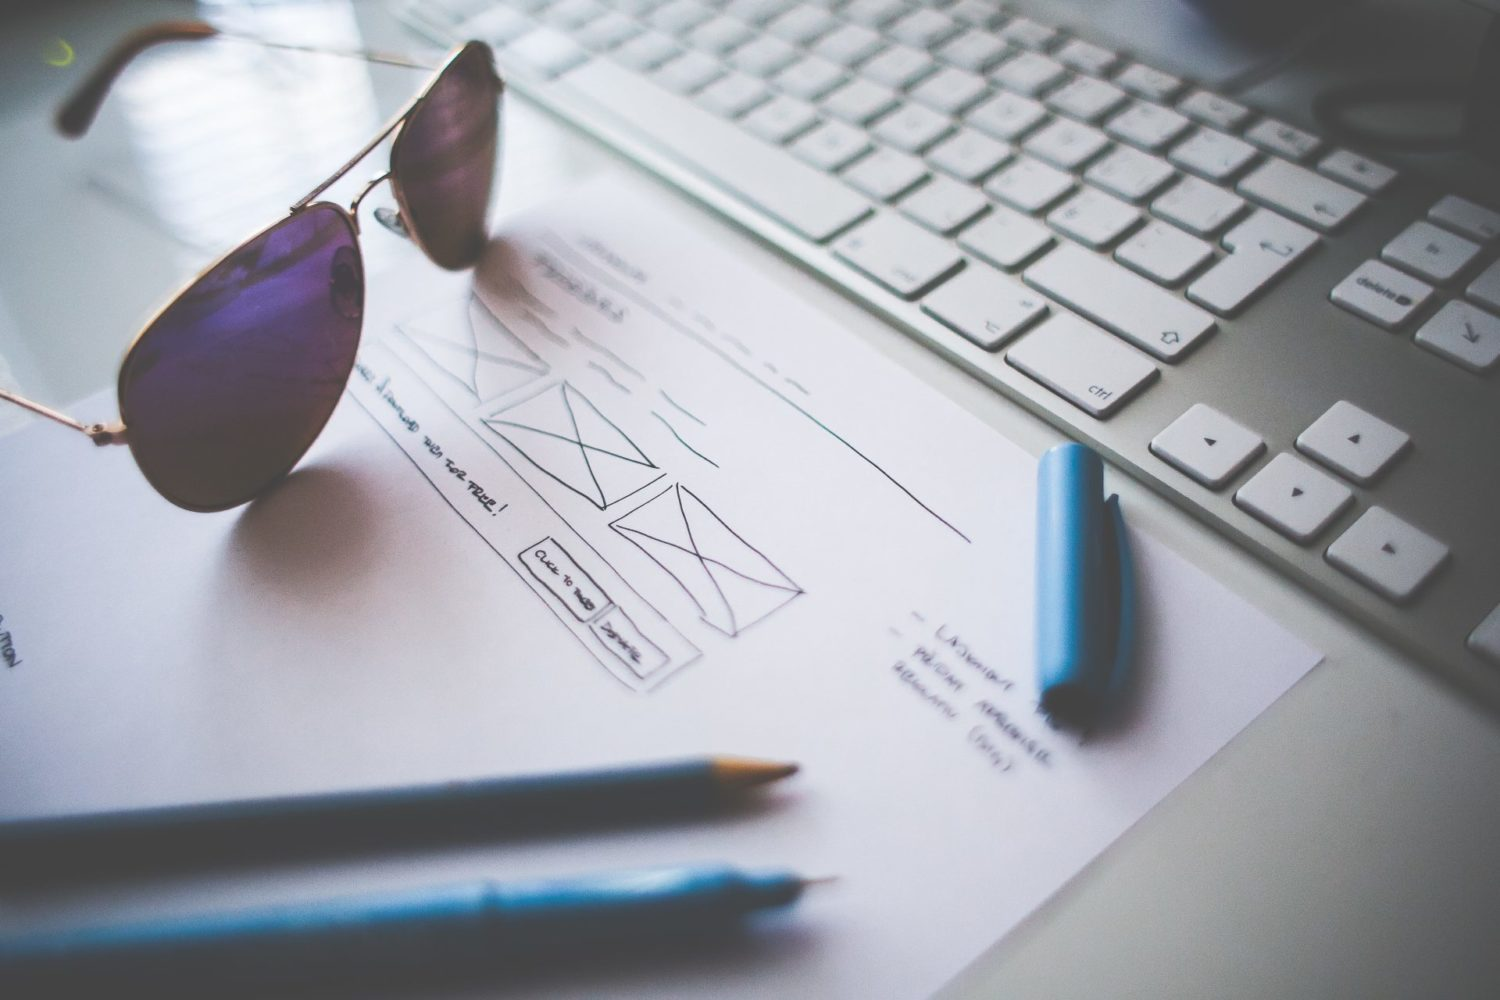 Client requirements for website design